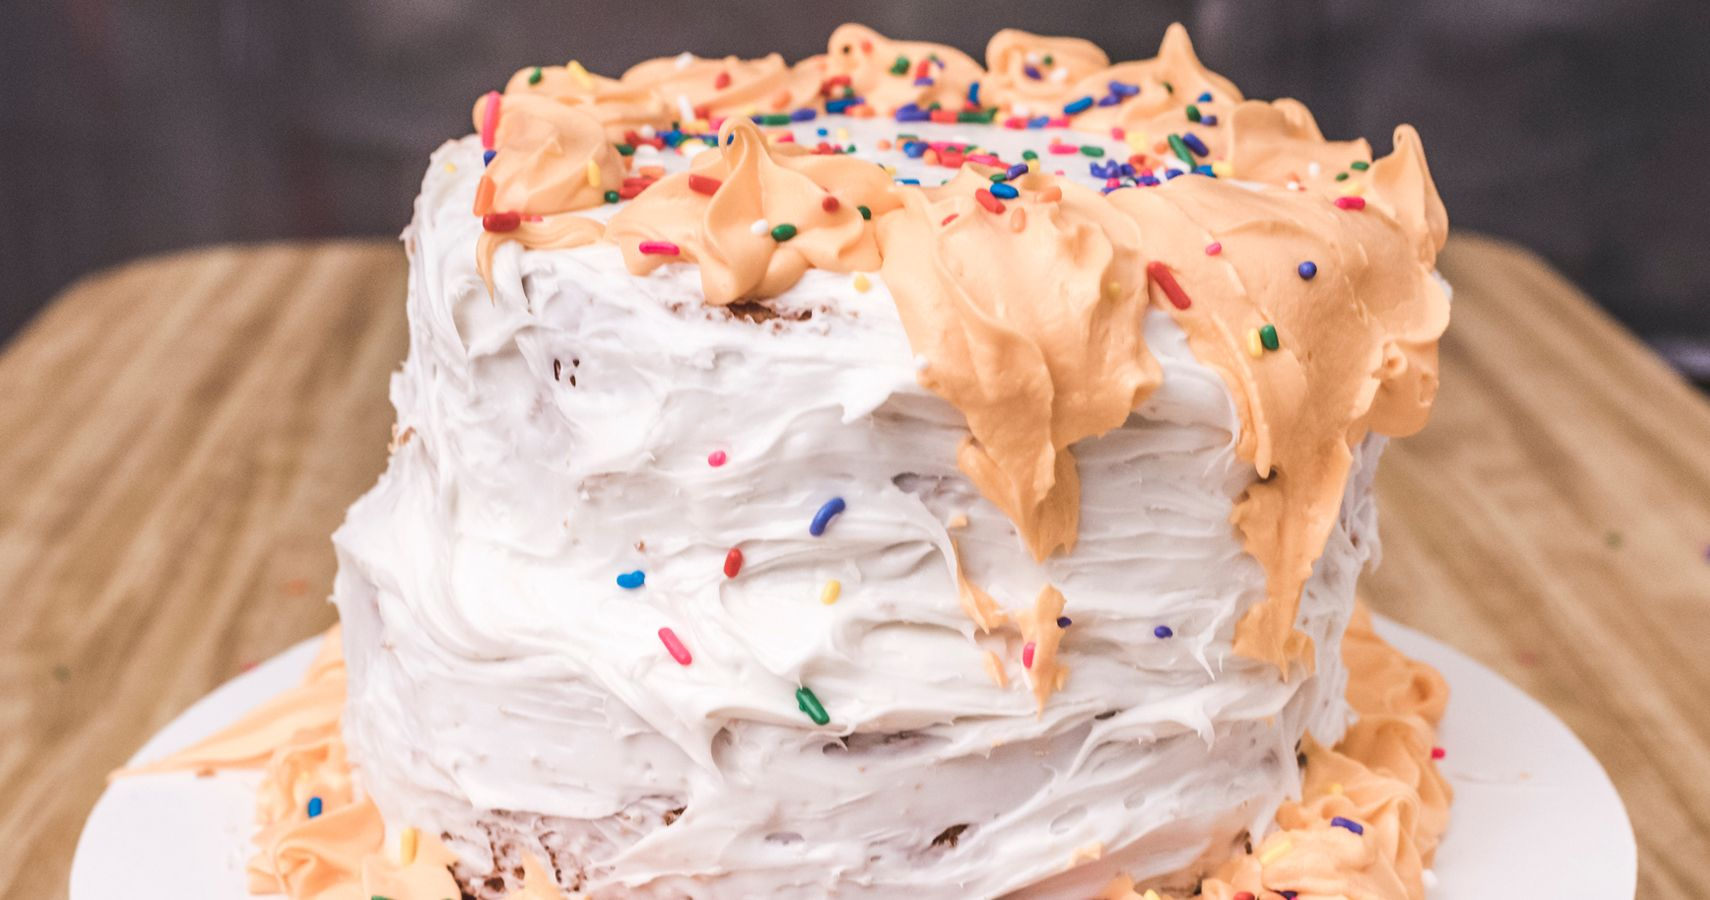 14 Homemade Birthday Cake Fails | Moms